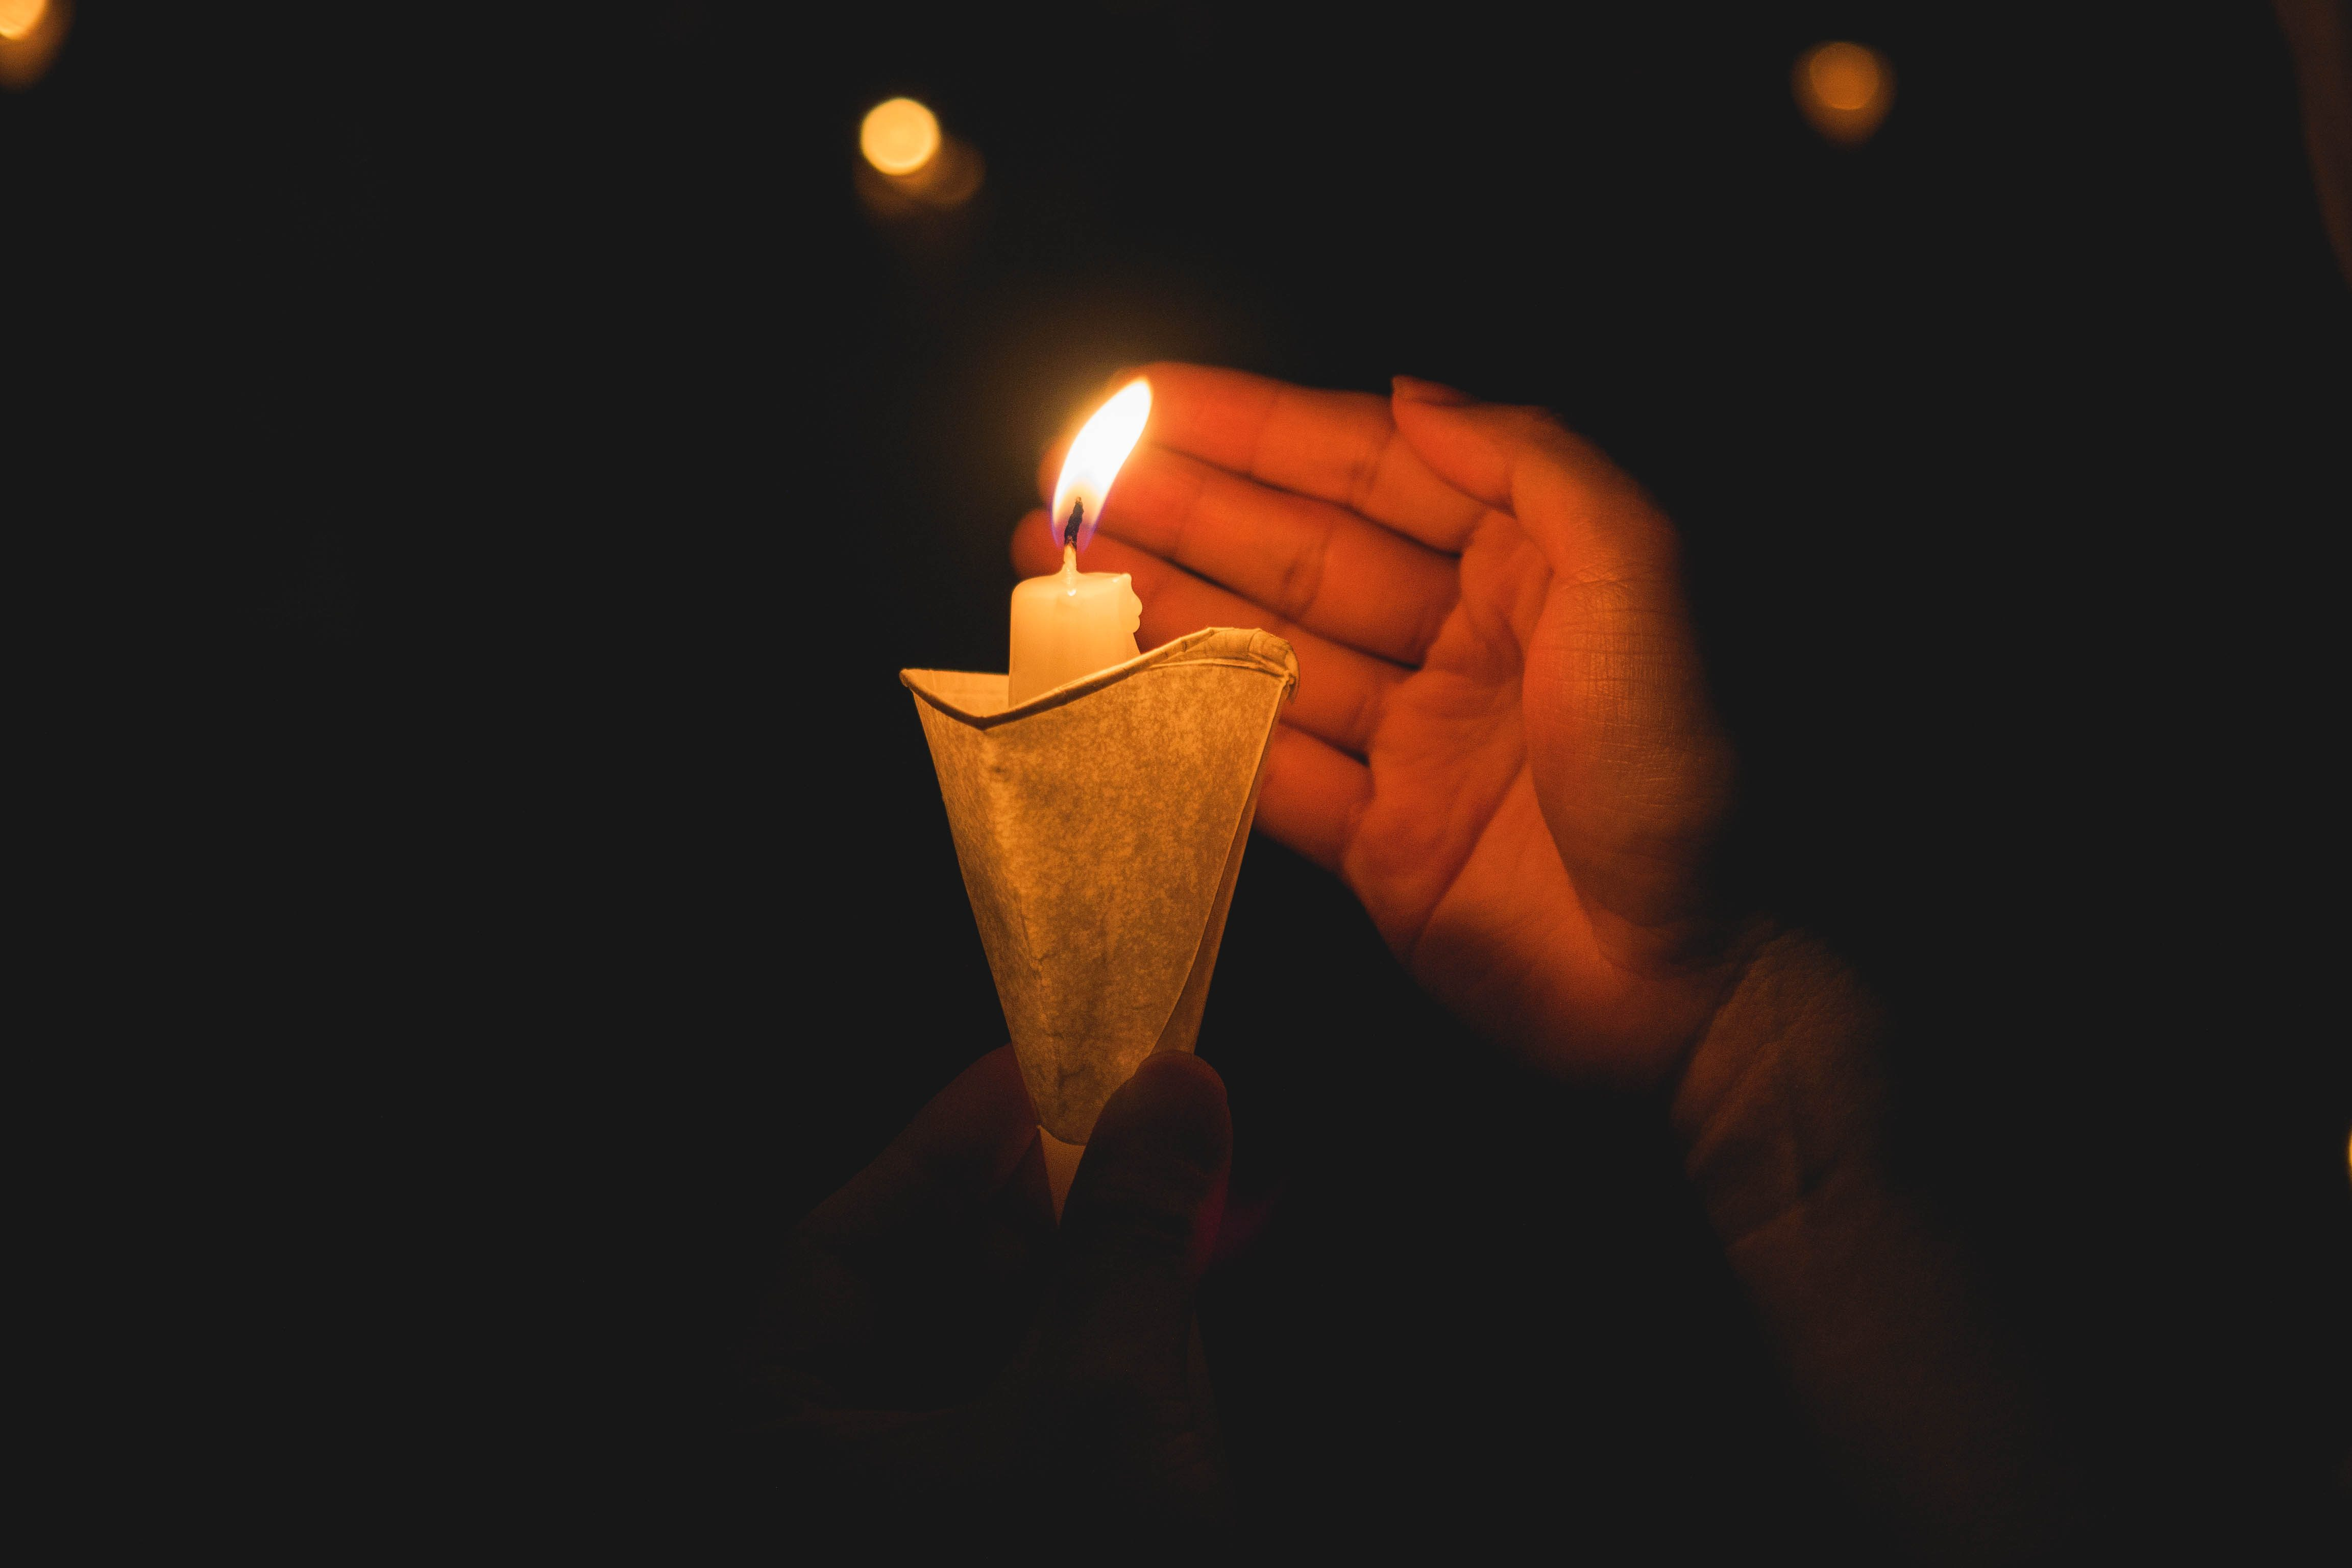 30th Anniversary of Candlelight Vigil for June 4 Massacre in Hong Kong